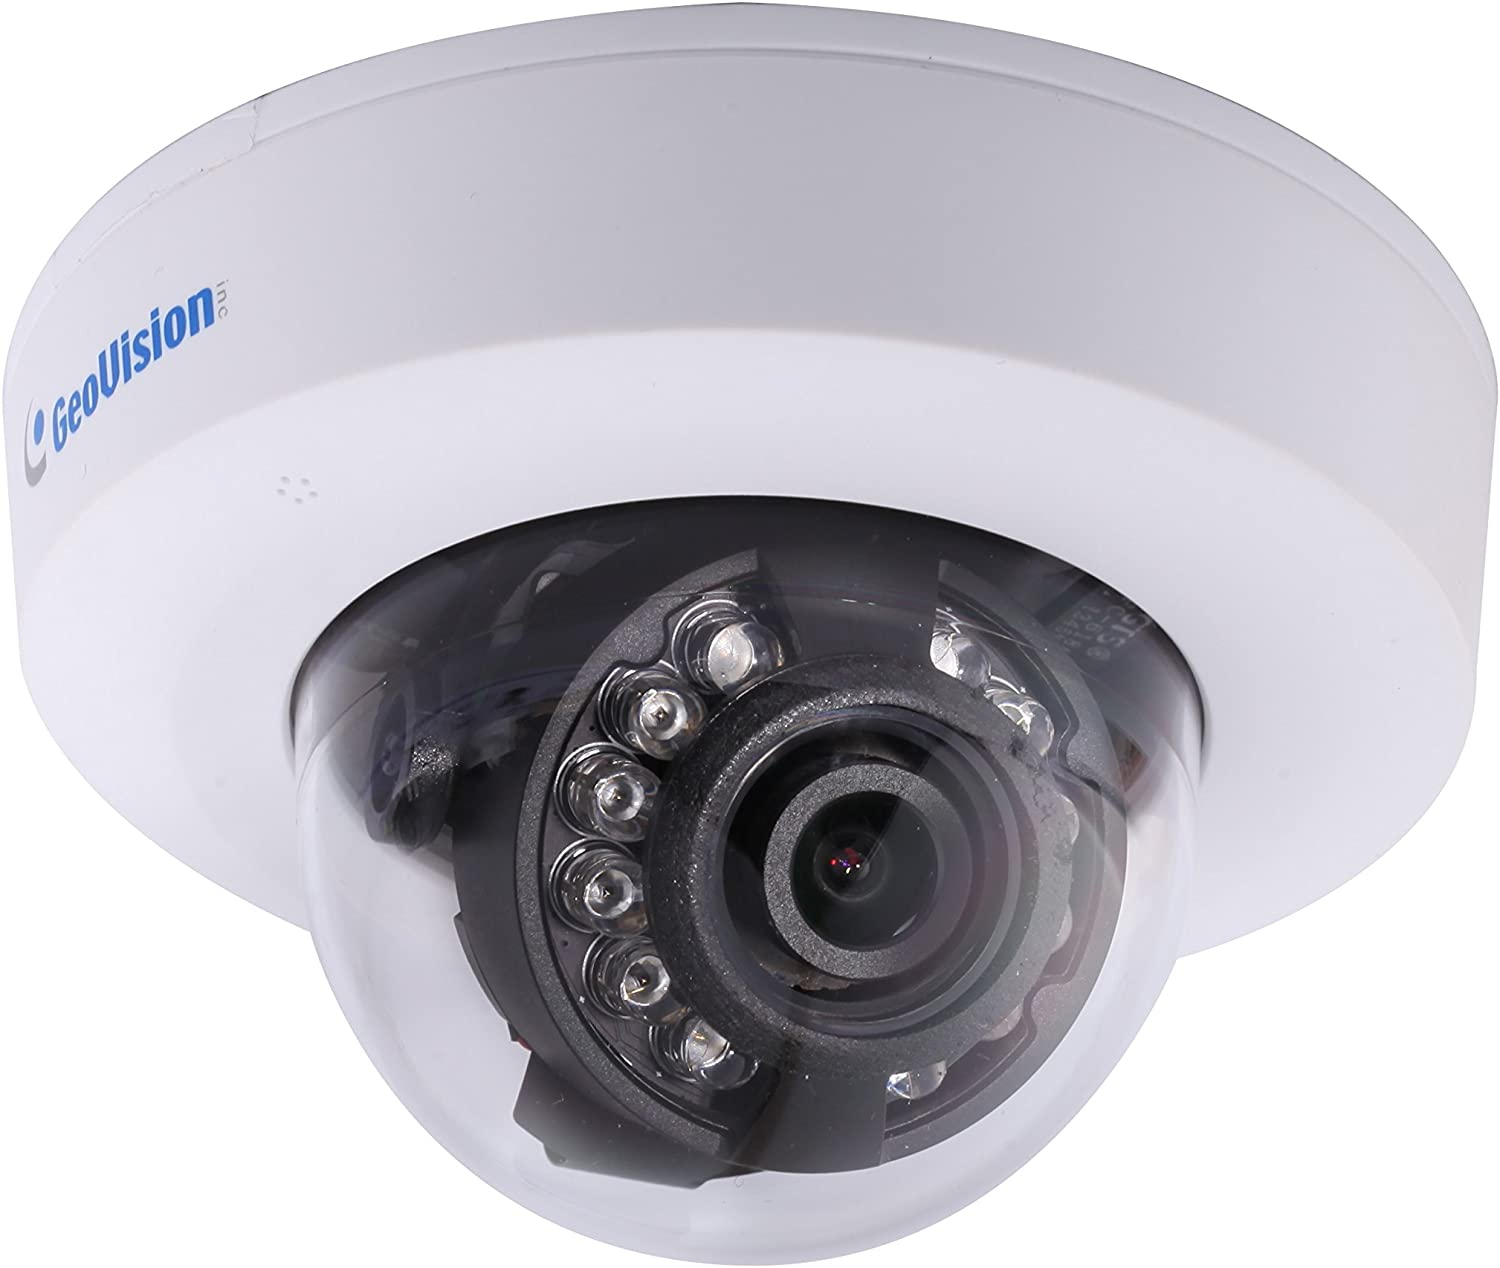 Hikvision USA DS-2CD2532F-I 2.8MM Outdoor Mini Dome Camera, IP66, 3 MP, IR to 10 Meters, PoE and 12VDC, 2.8 mm Lens